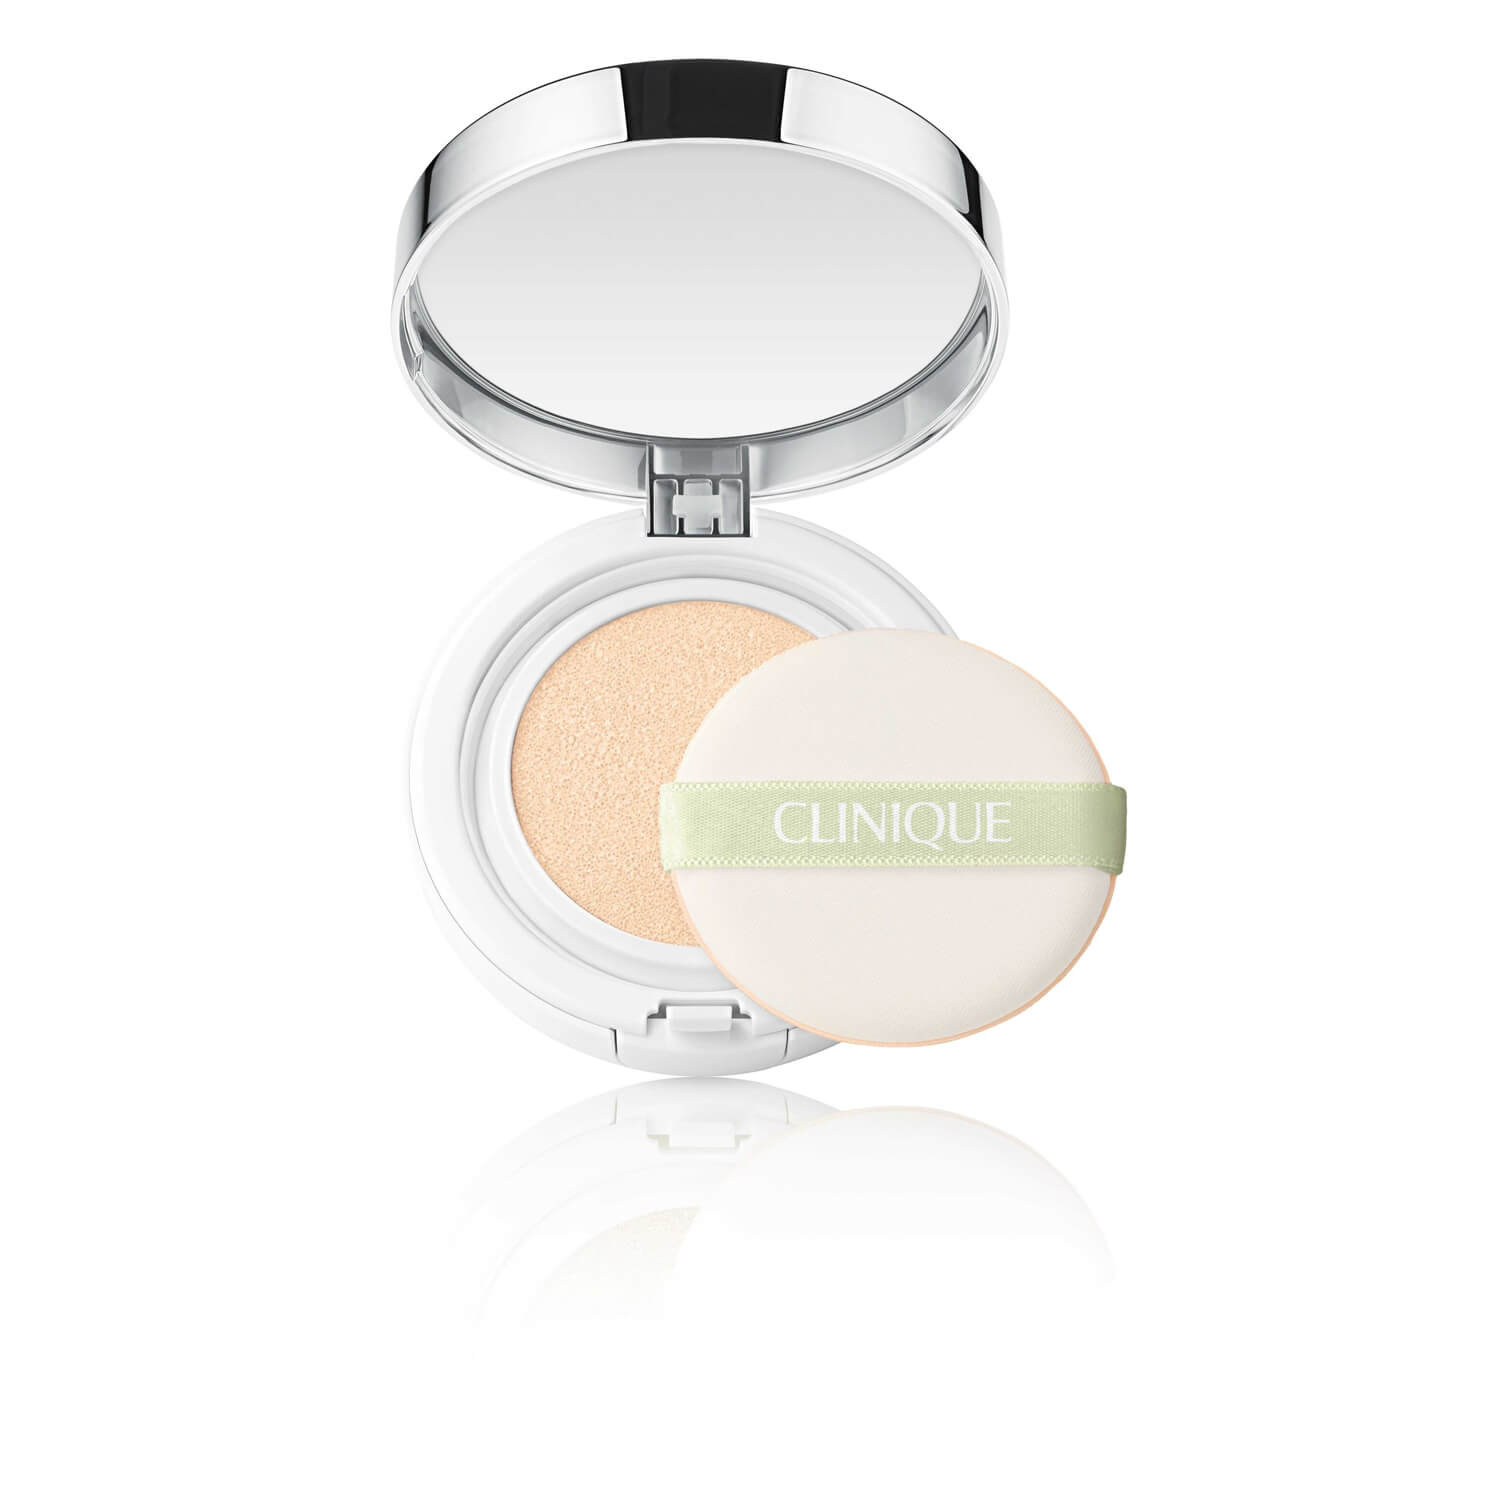 Clinique Super City Block BB Cushion Compact (около 600 грн)